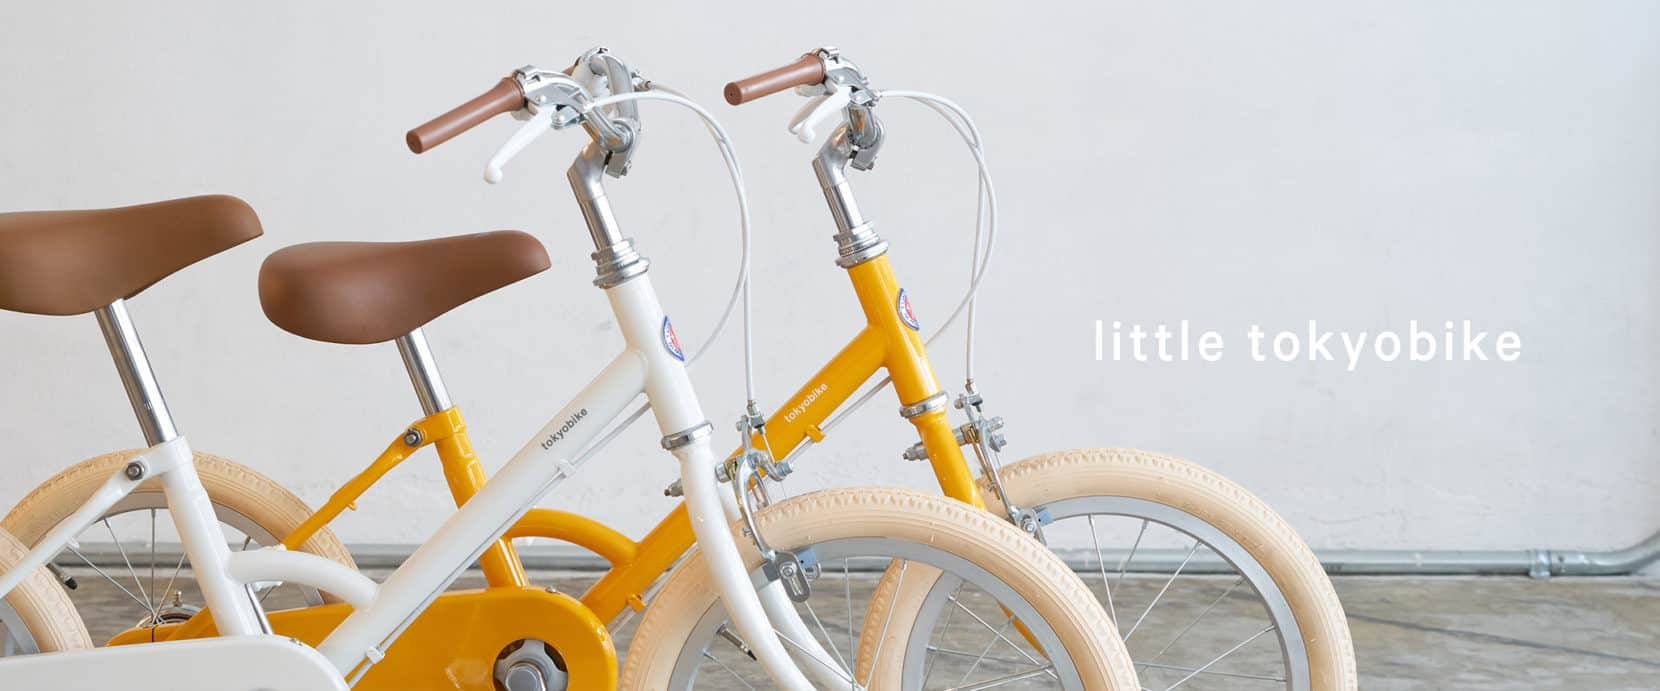 little tokyobike for kids